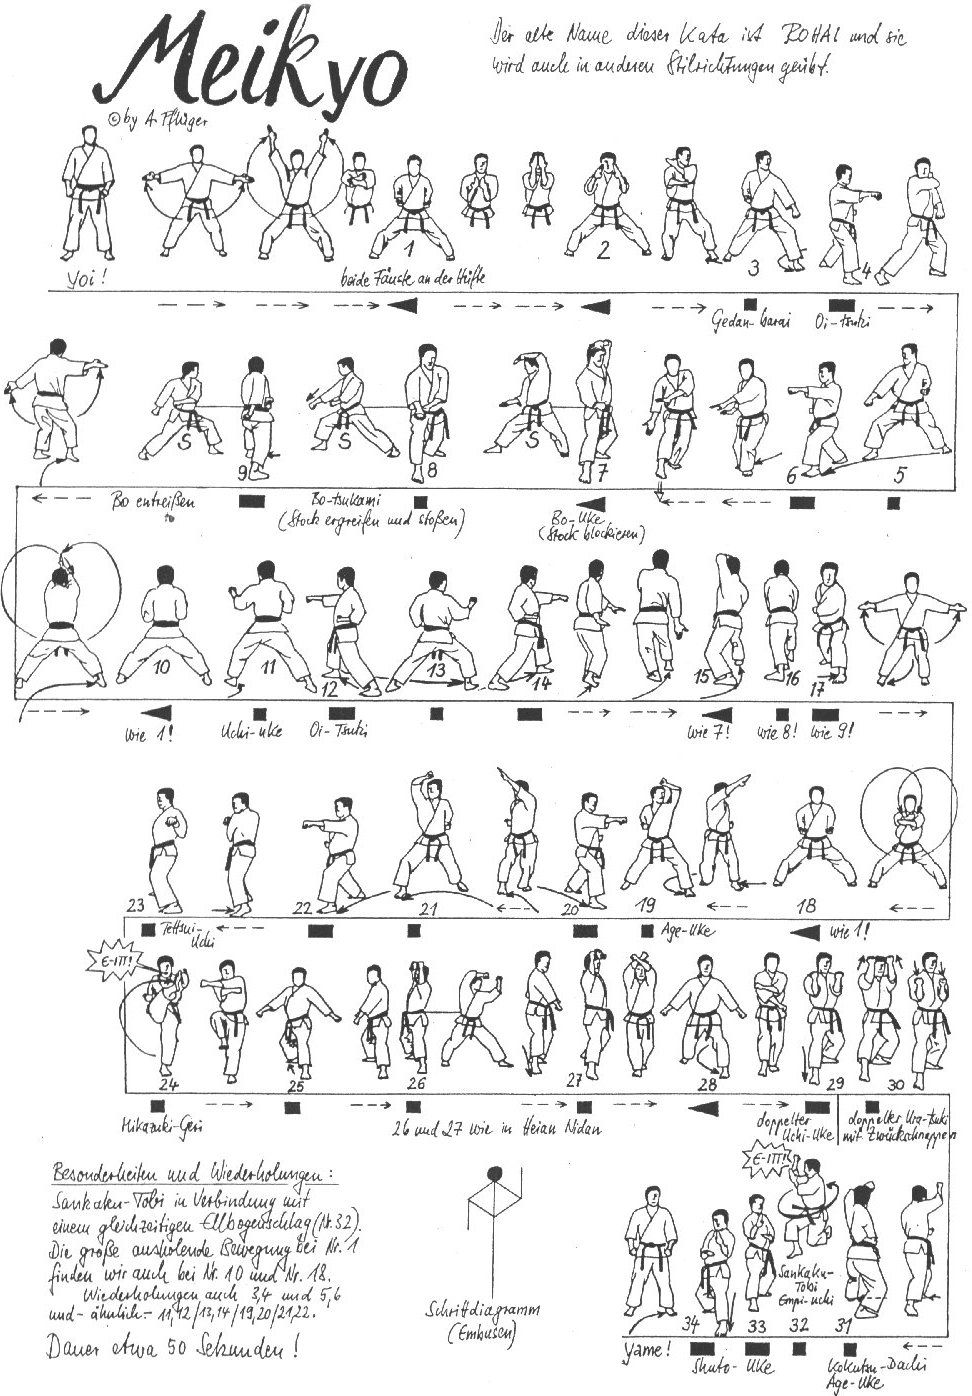 medium resolution of shorin ryu kata diagrams shotokan karate katas shorin ryu karateshorin ryu kata diagrams shotokan karate katas